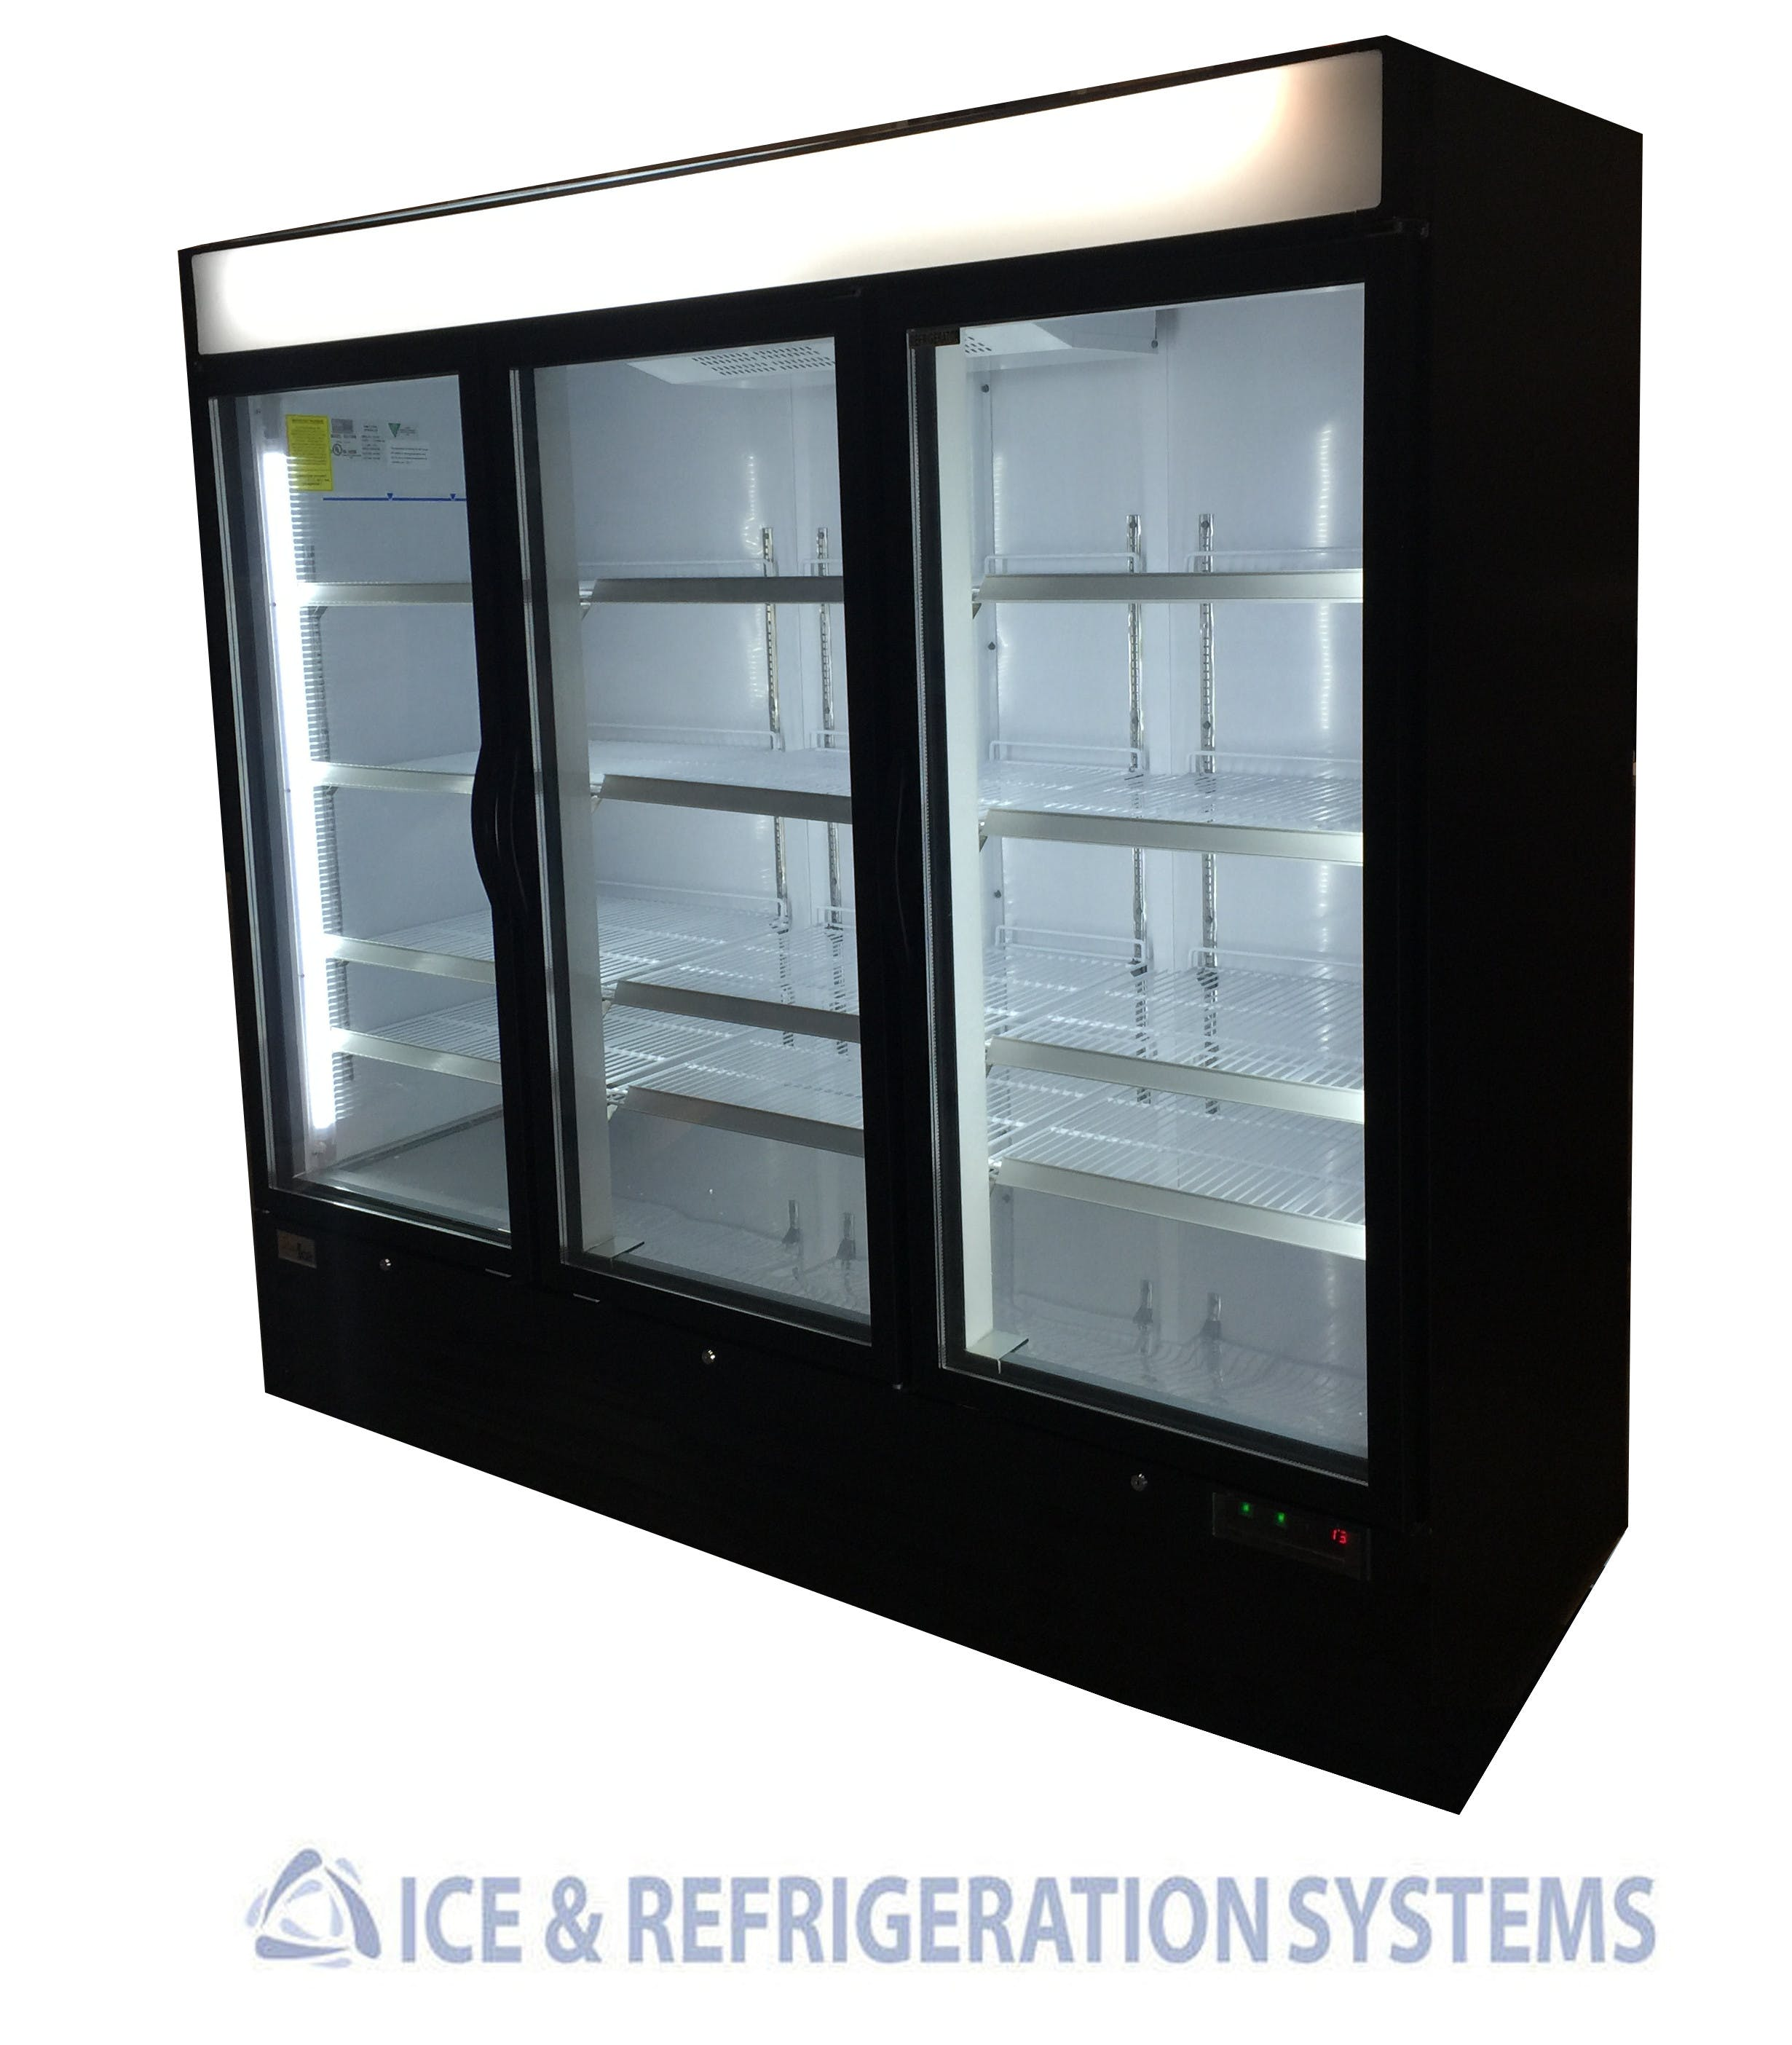 SI3-72RB Commercial refrigerator sold by Ice & Refrigeration Systems